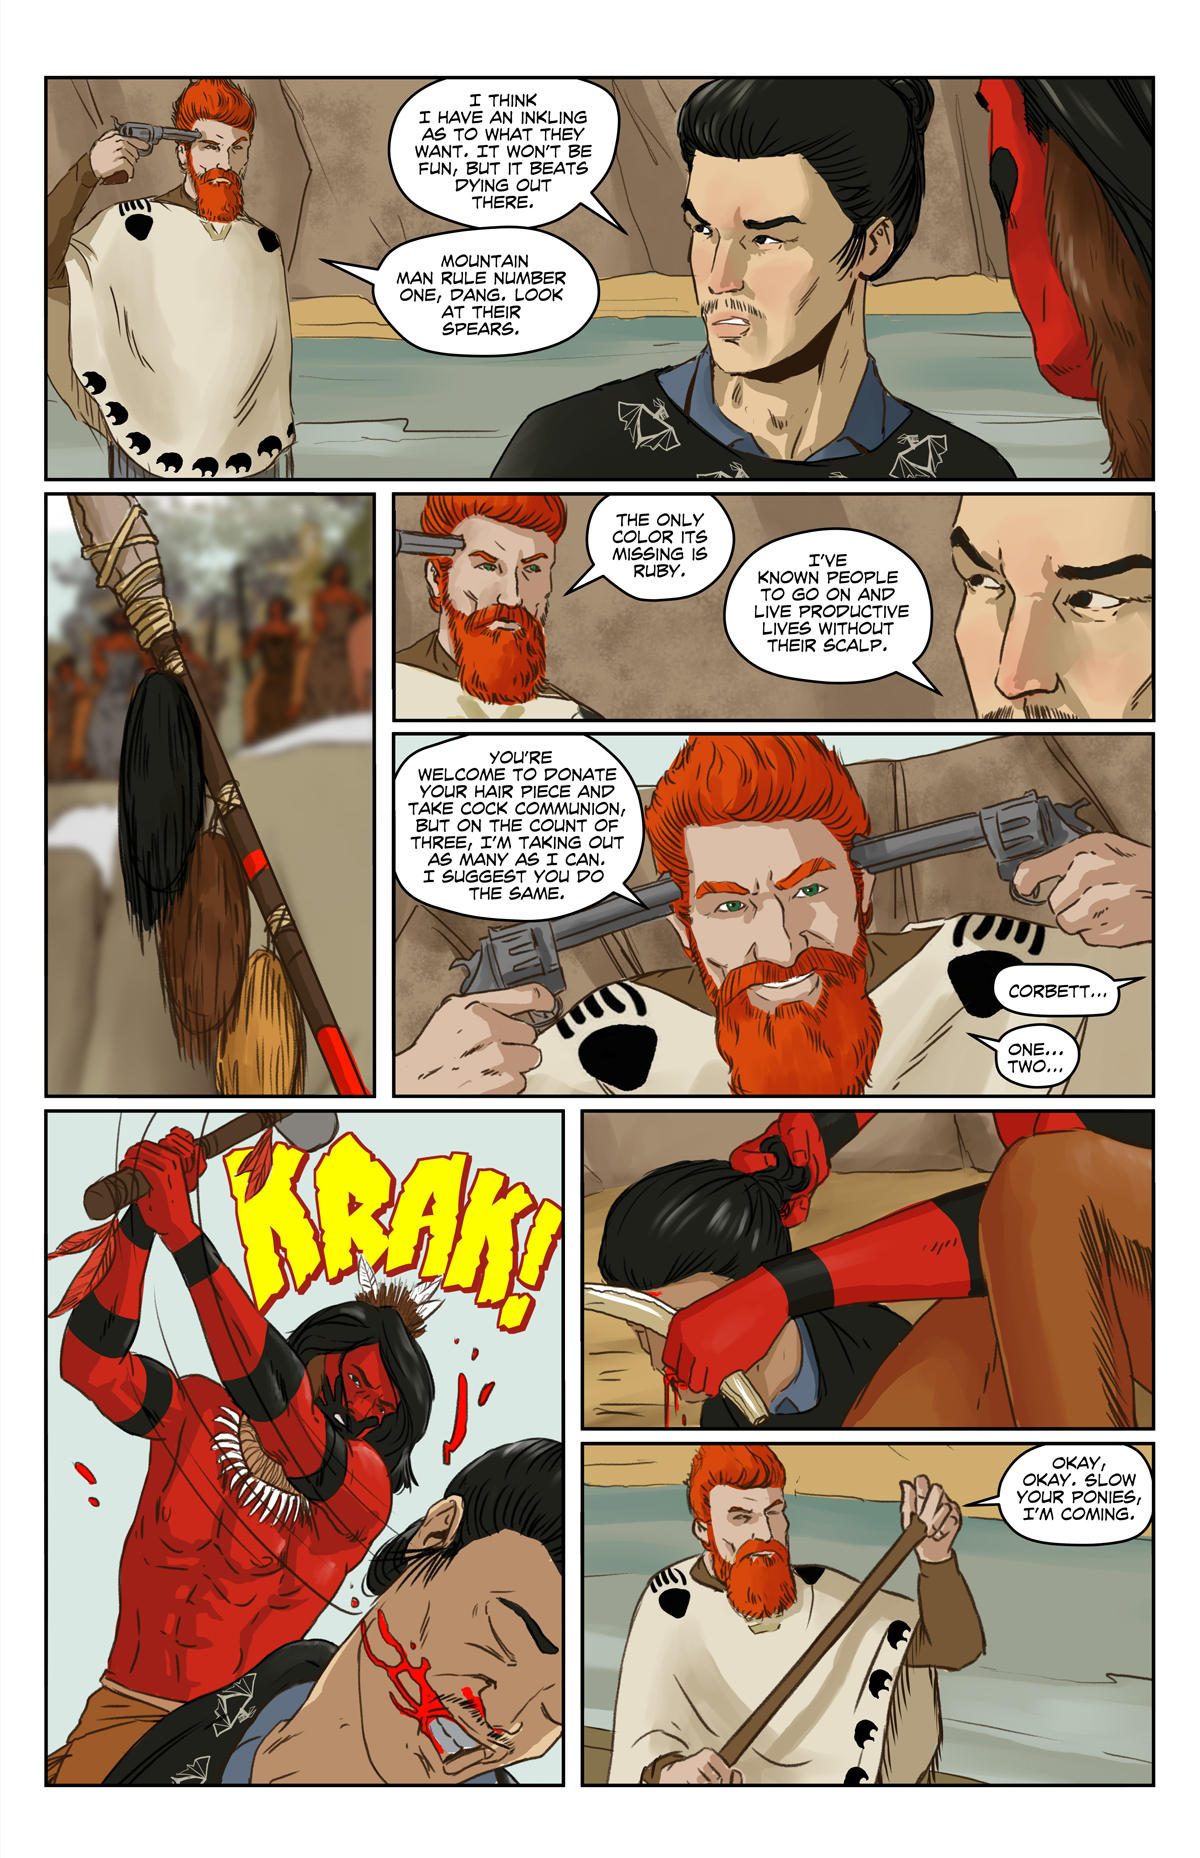 Episode 1, Page 7